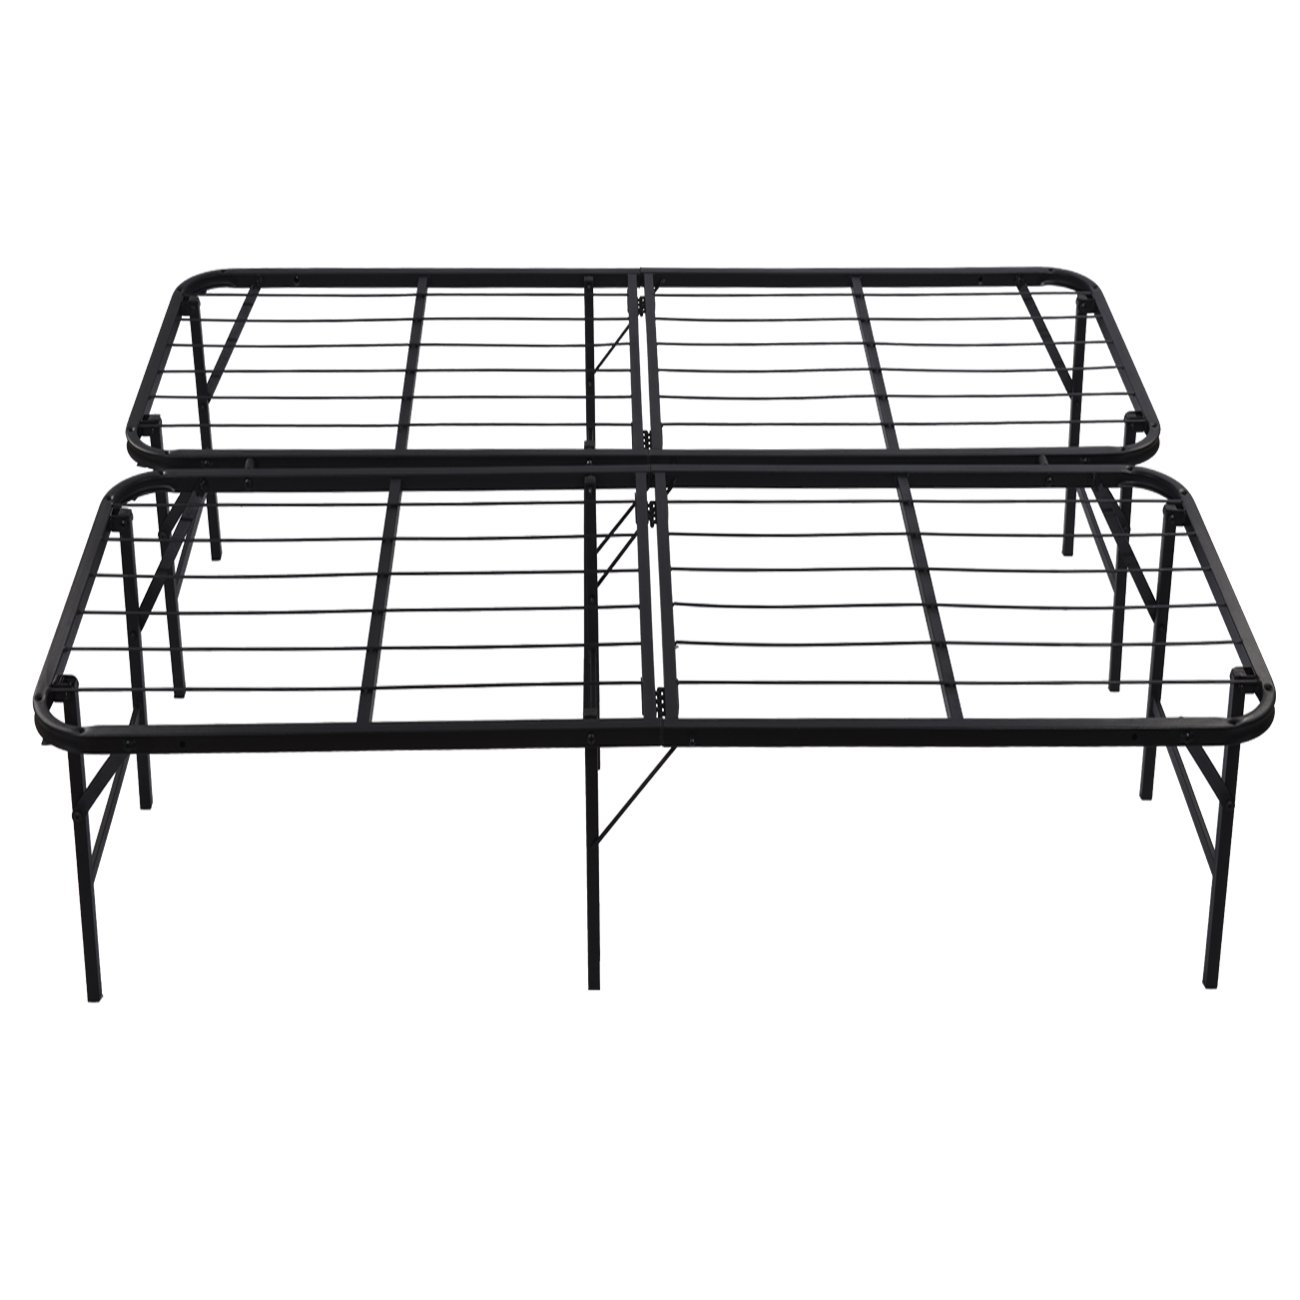 Amazon Belleze Foldable Bed Frame Queen Size 17 Inch Height Under Storage Space Kitchen Dining